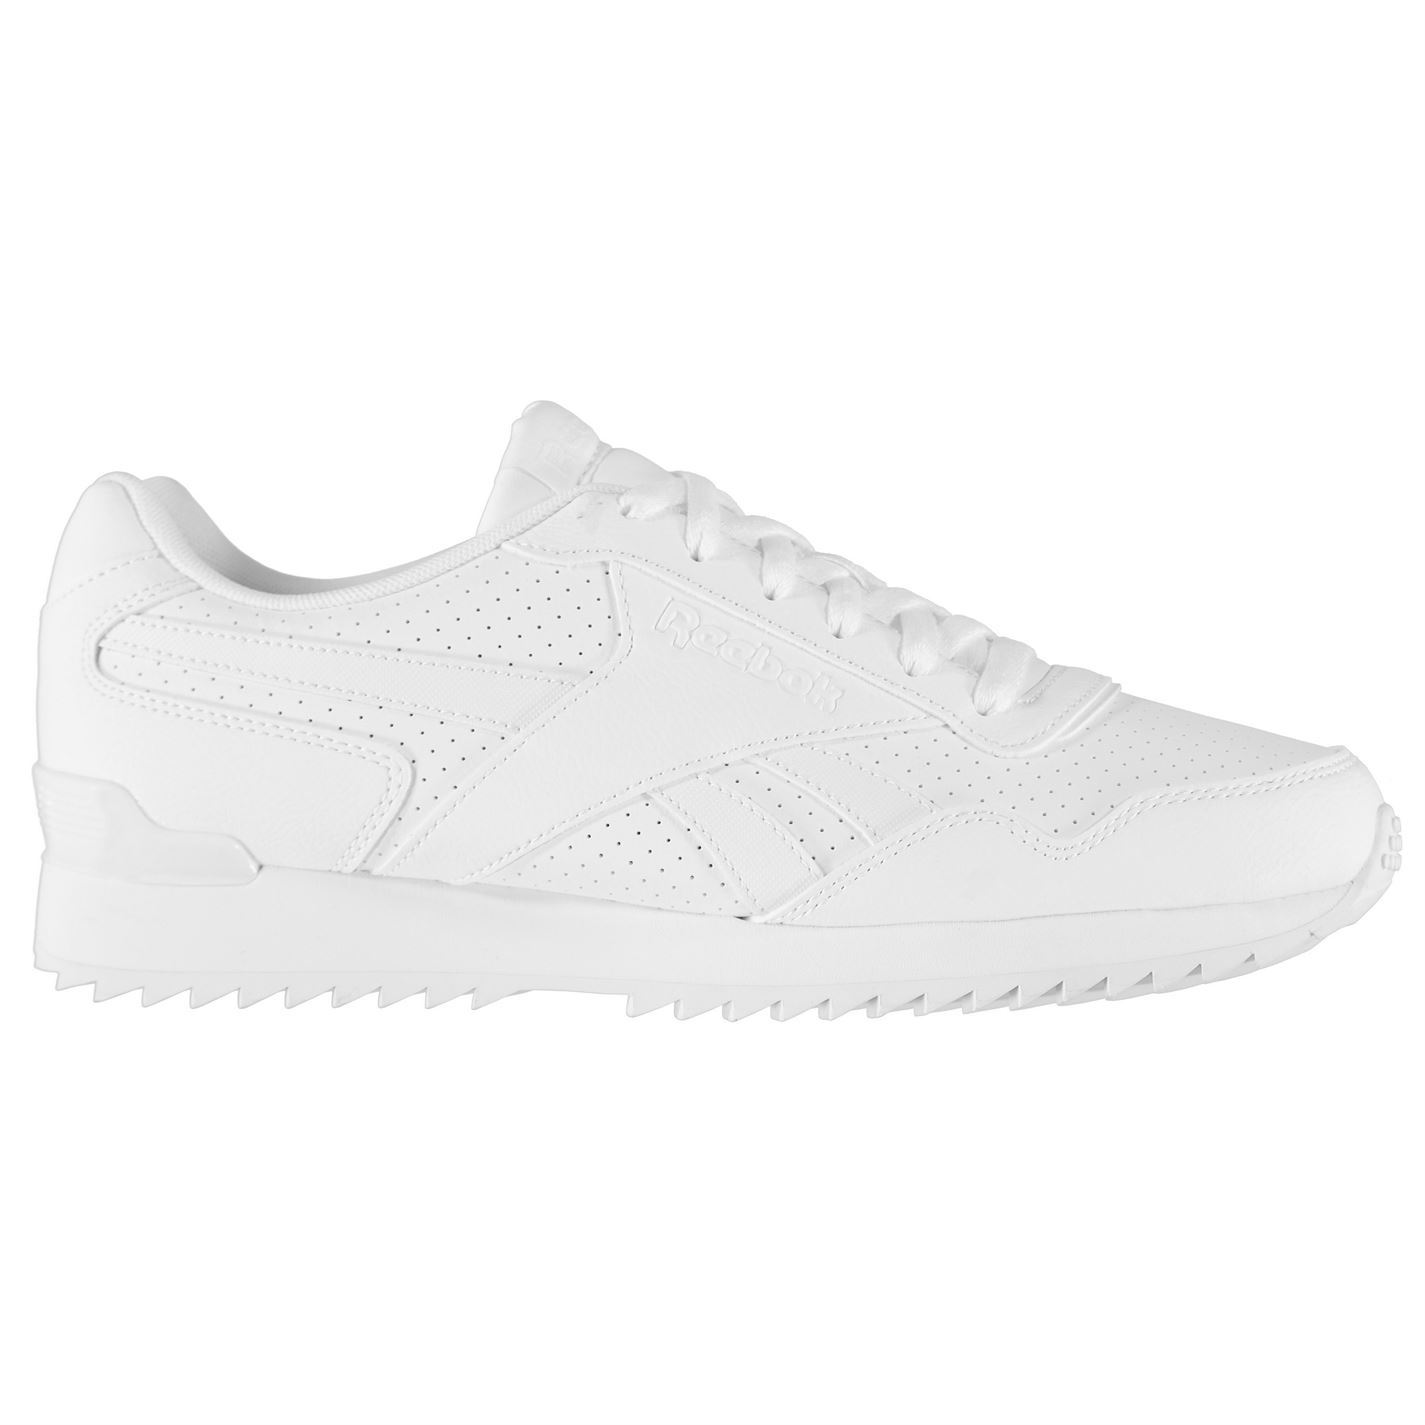 ... Reebok Royal Glide Ripple Clip Trainers Mens White Sports Shoes  Sneakers ... 2c0b613d78